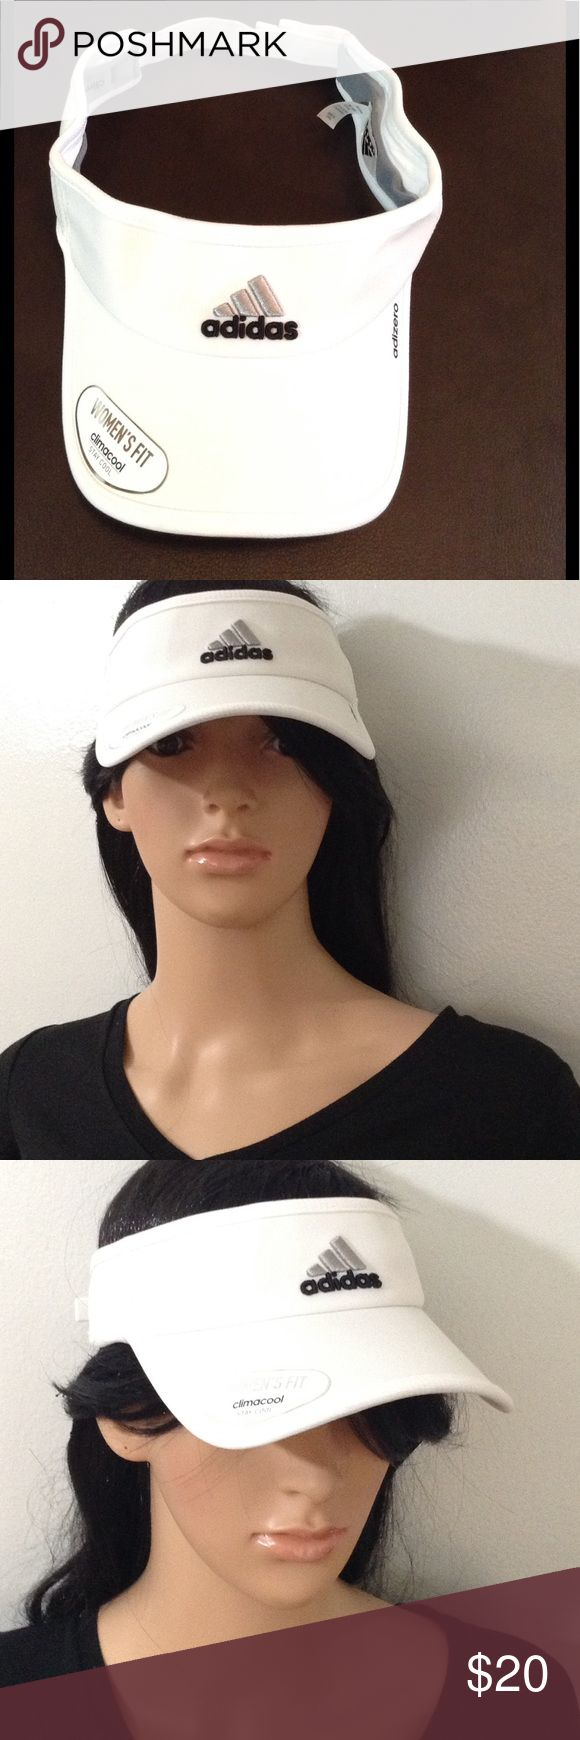 Adidas Sun Visor ( With Stay Cool Technology ) Adidas visor features Logo front and back design. Sun visor has climatology extra band that keeps you cool on the hottest days. Good for amusement park trips, outdoor workouts, and routine walks. adidas Accessories Hats